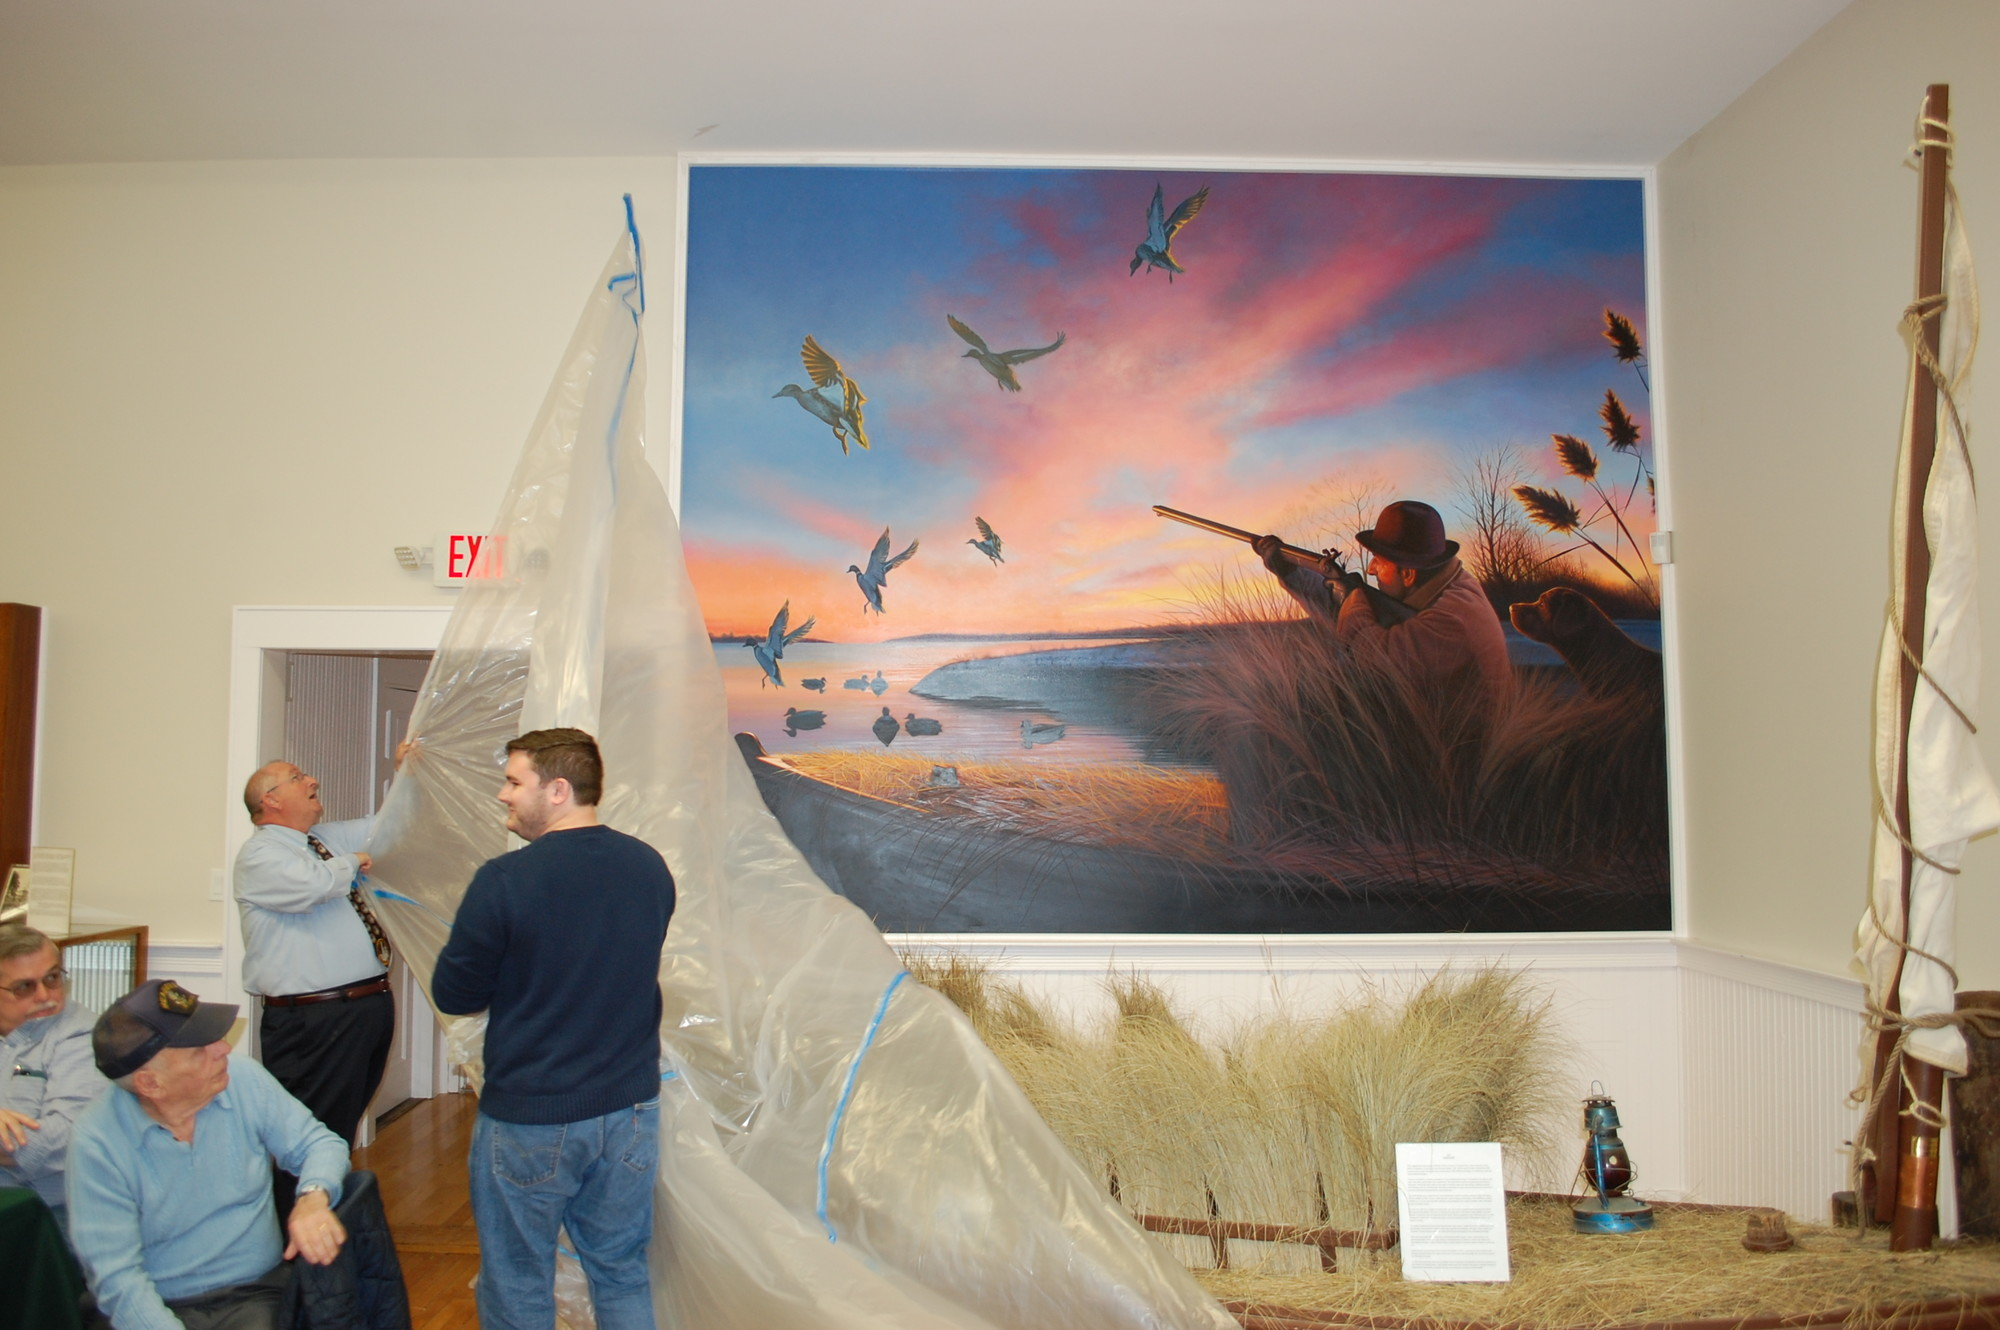 Historical Society officers Steve Bongiovi, left, and Patrick Martz unveiled the mural that depicts duck hunting in Seaford in the early 1900s.